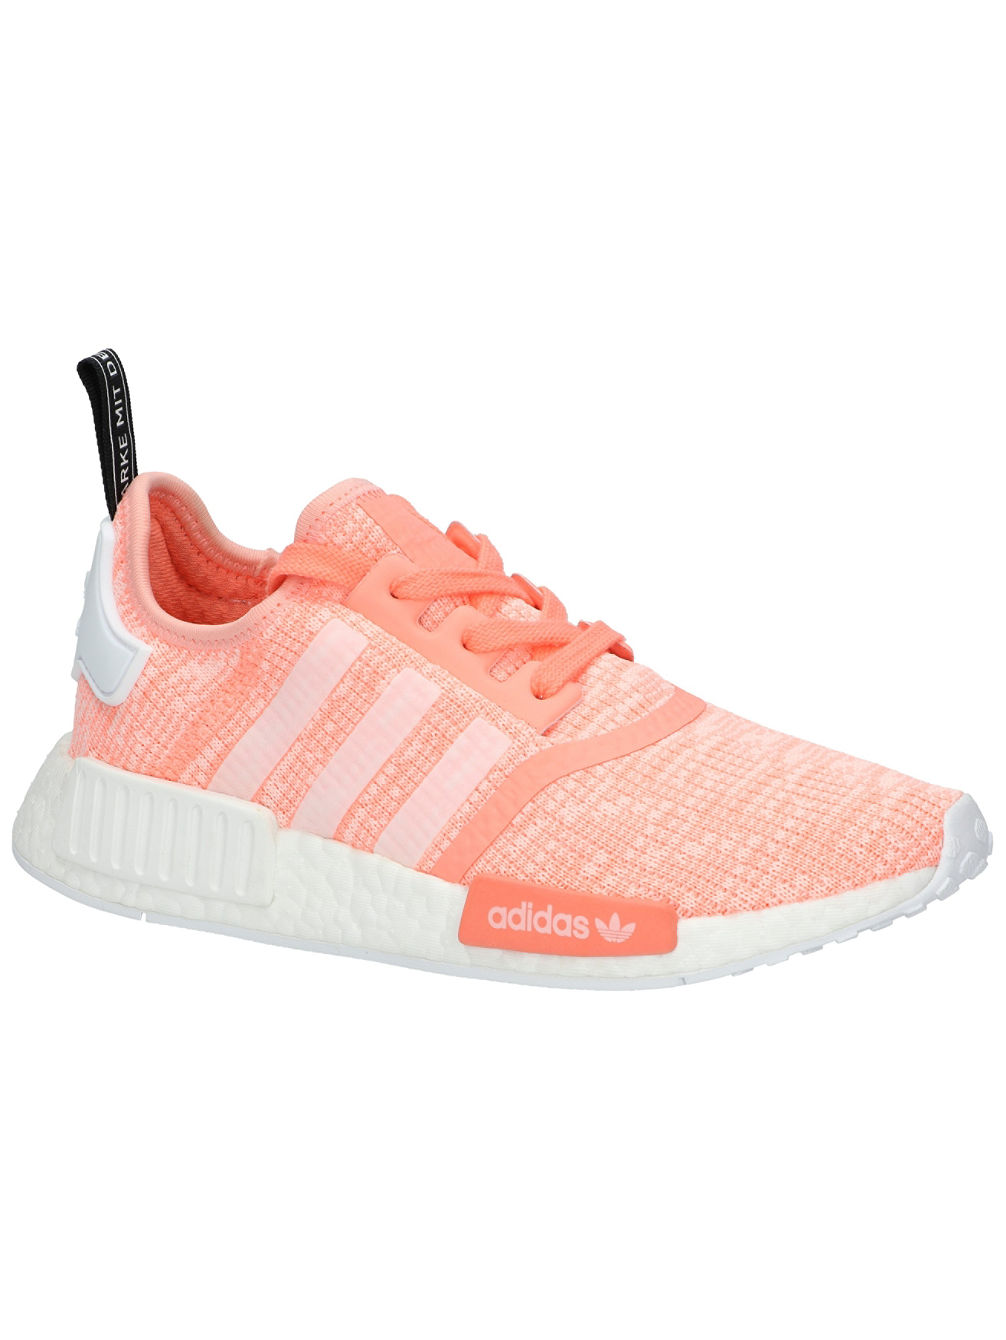 f922573f19704 Buy adidas Originals NMD R1 W Sneakers Women online at Blue Tomato